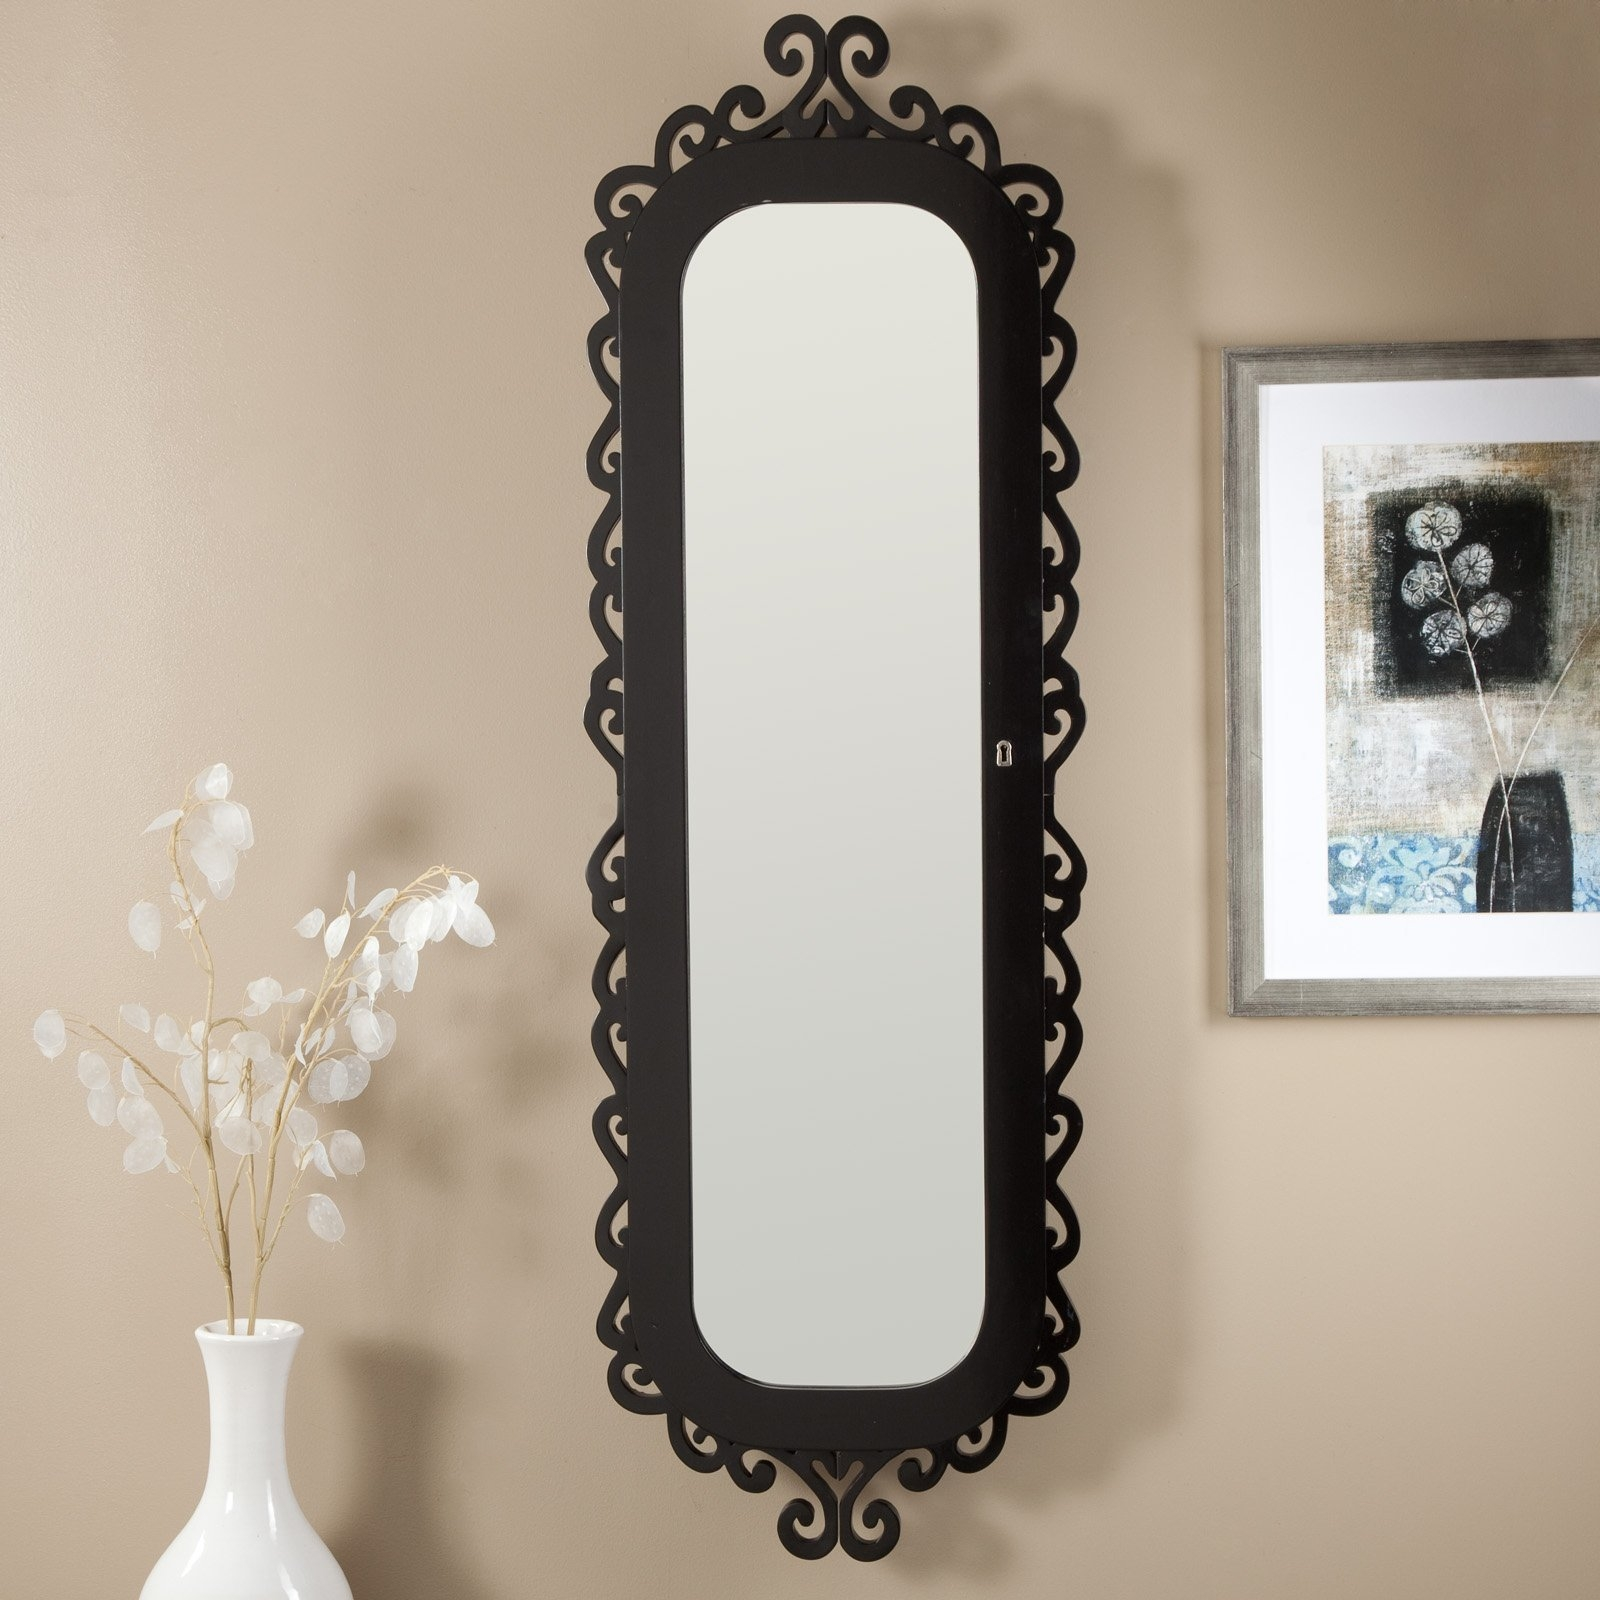 Buy Bathroom Mirrors Online Creative Bathroom Decoration With Buy A Mirror (Image 6 of 15)